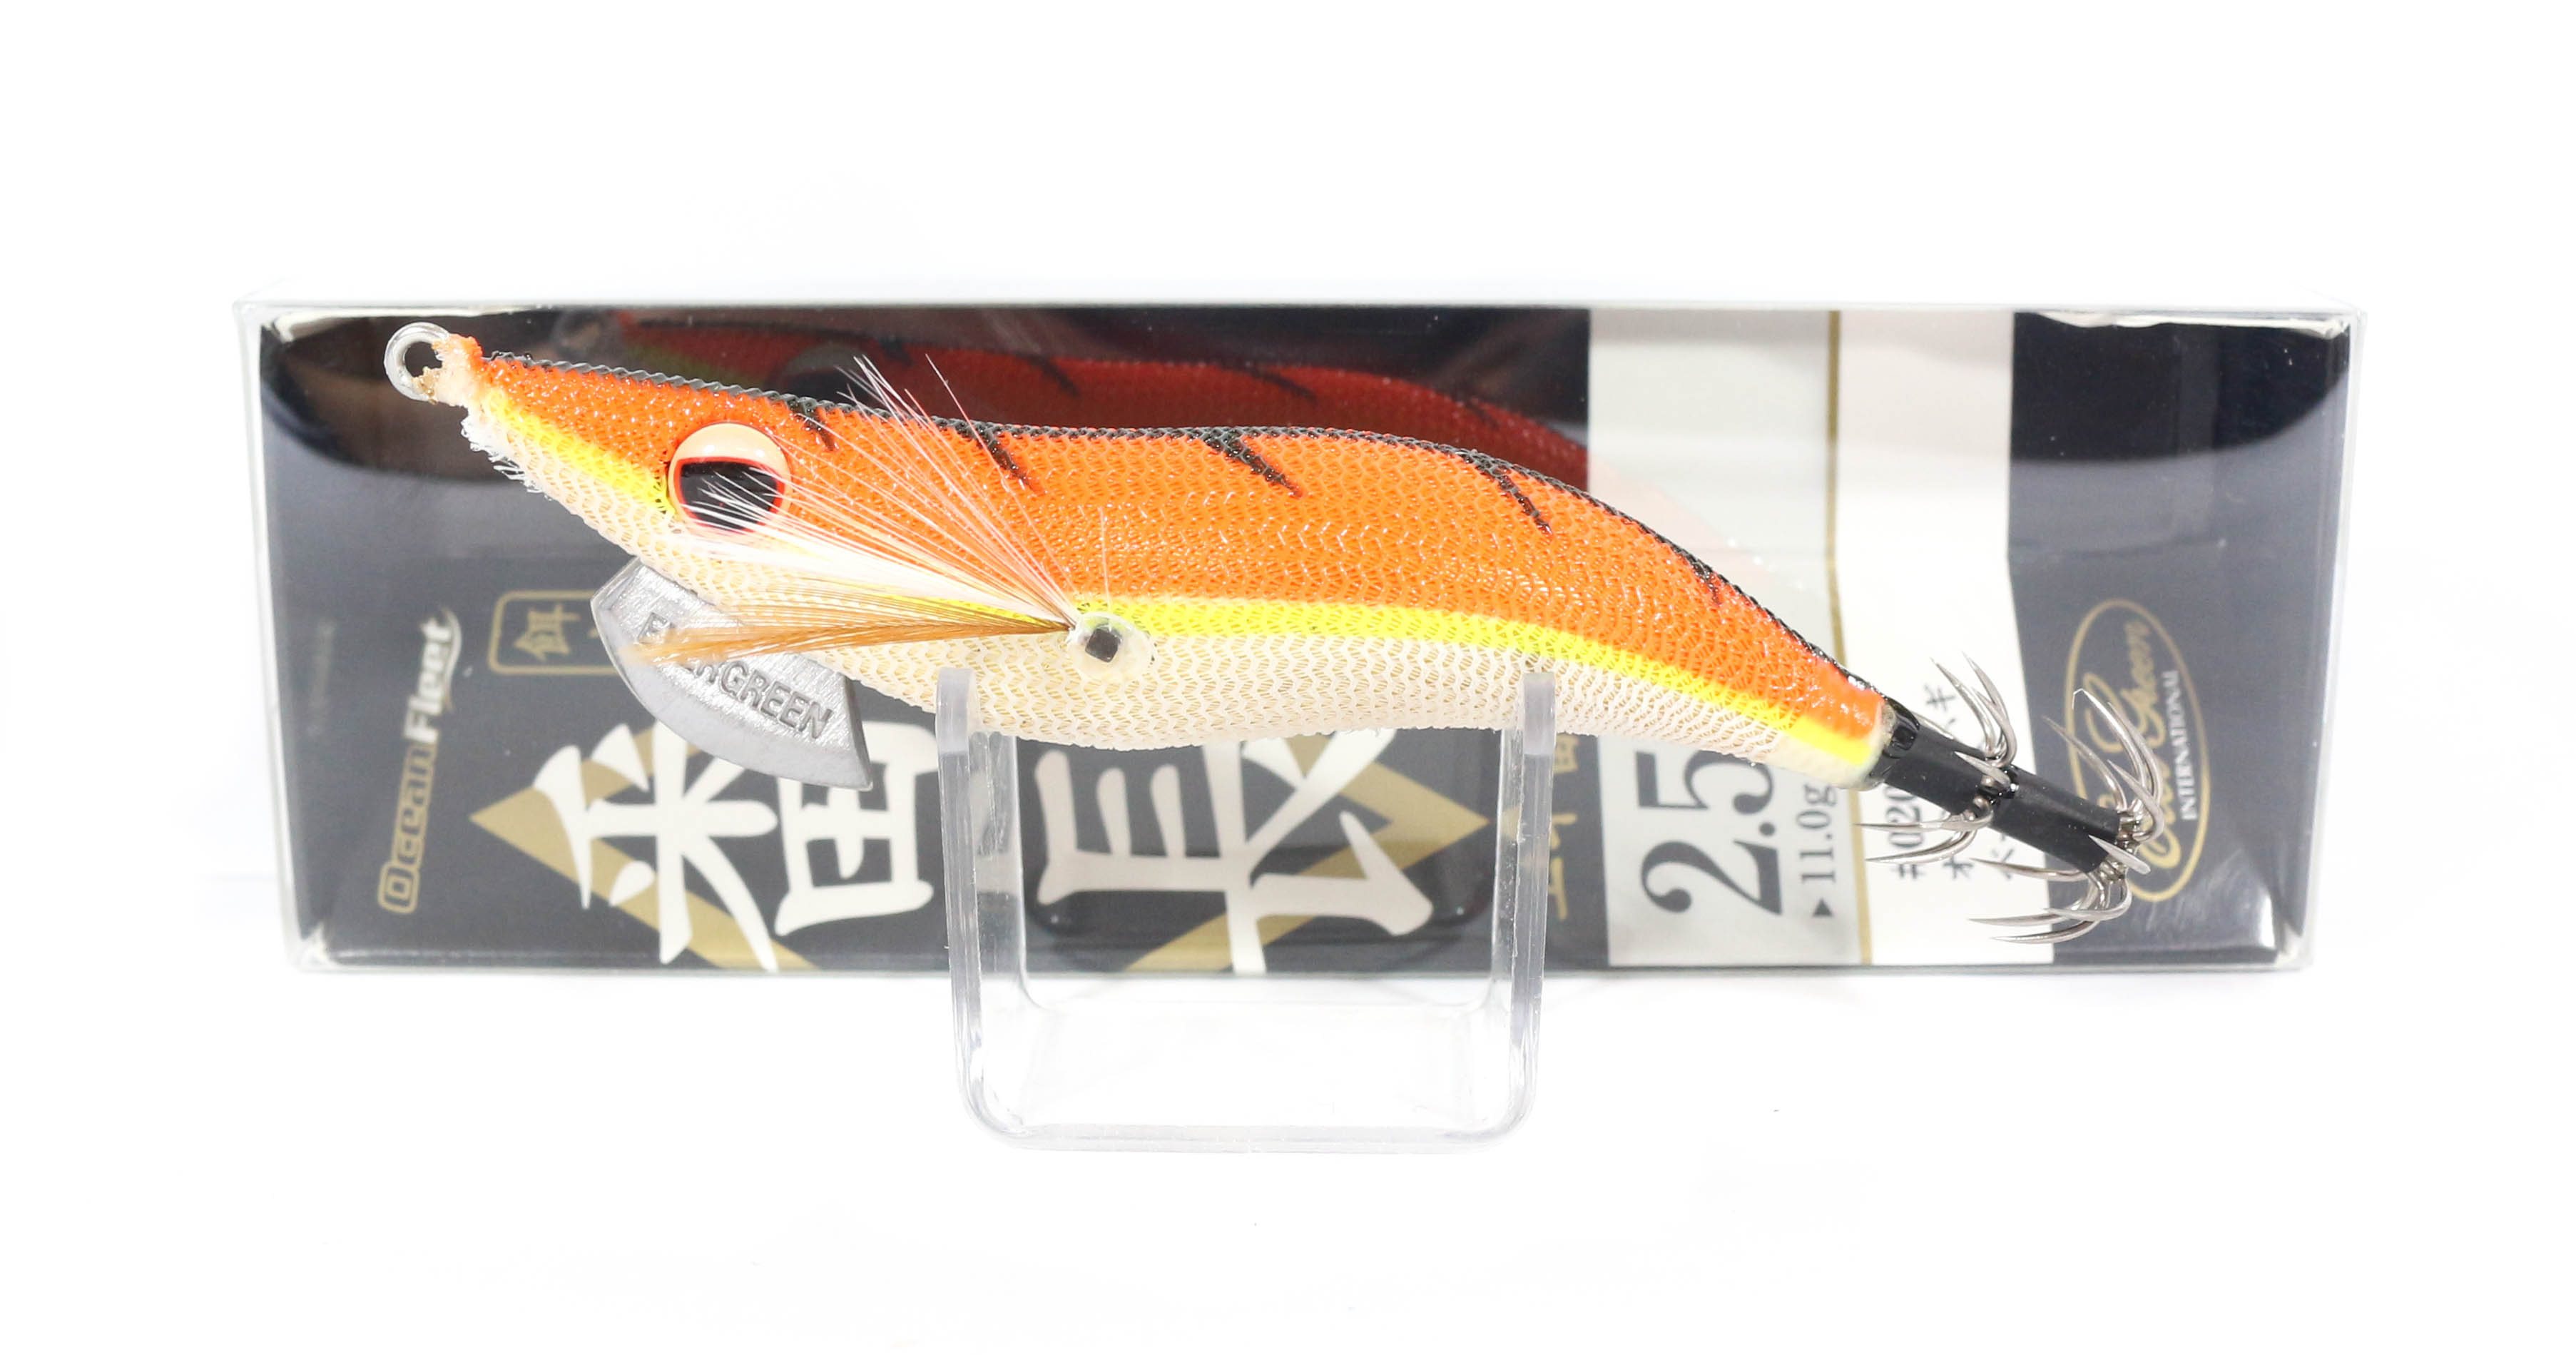 Evergreen Ocean Fleet Custom Squid Jig Lure 2.5 0201G (9308)